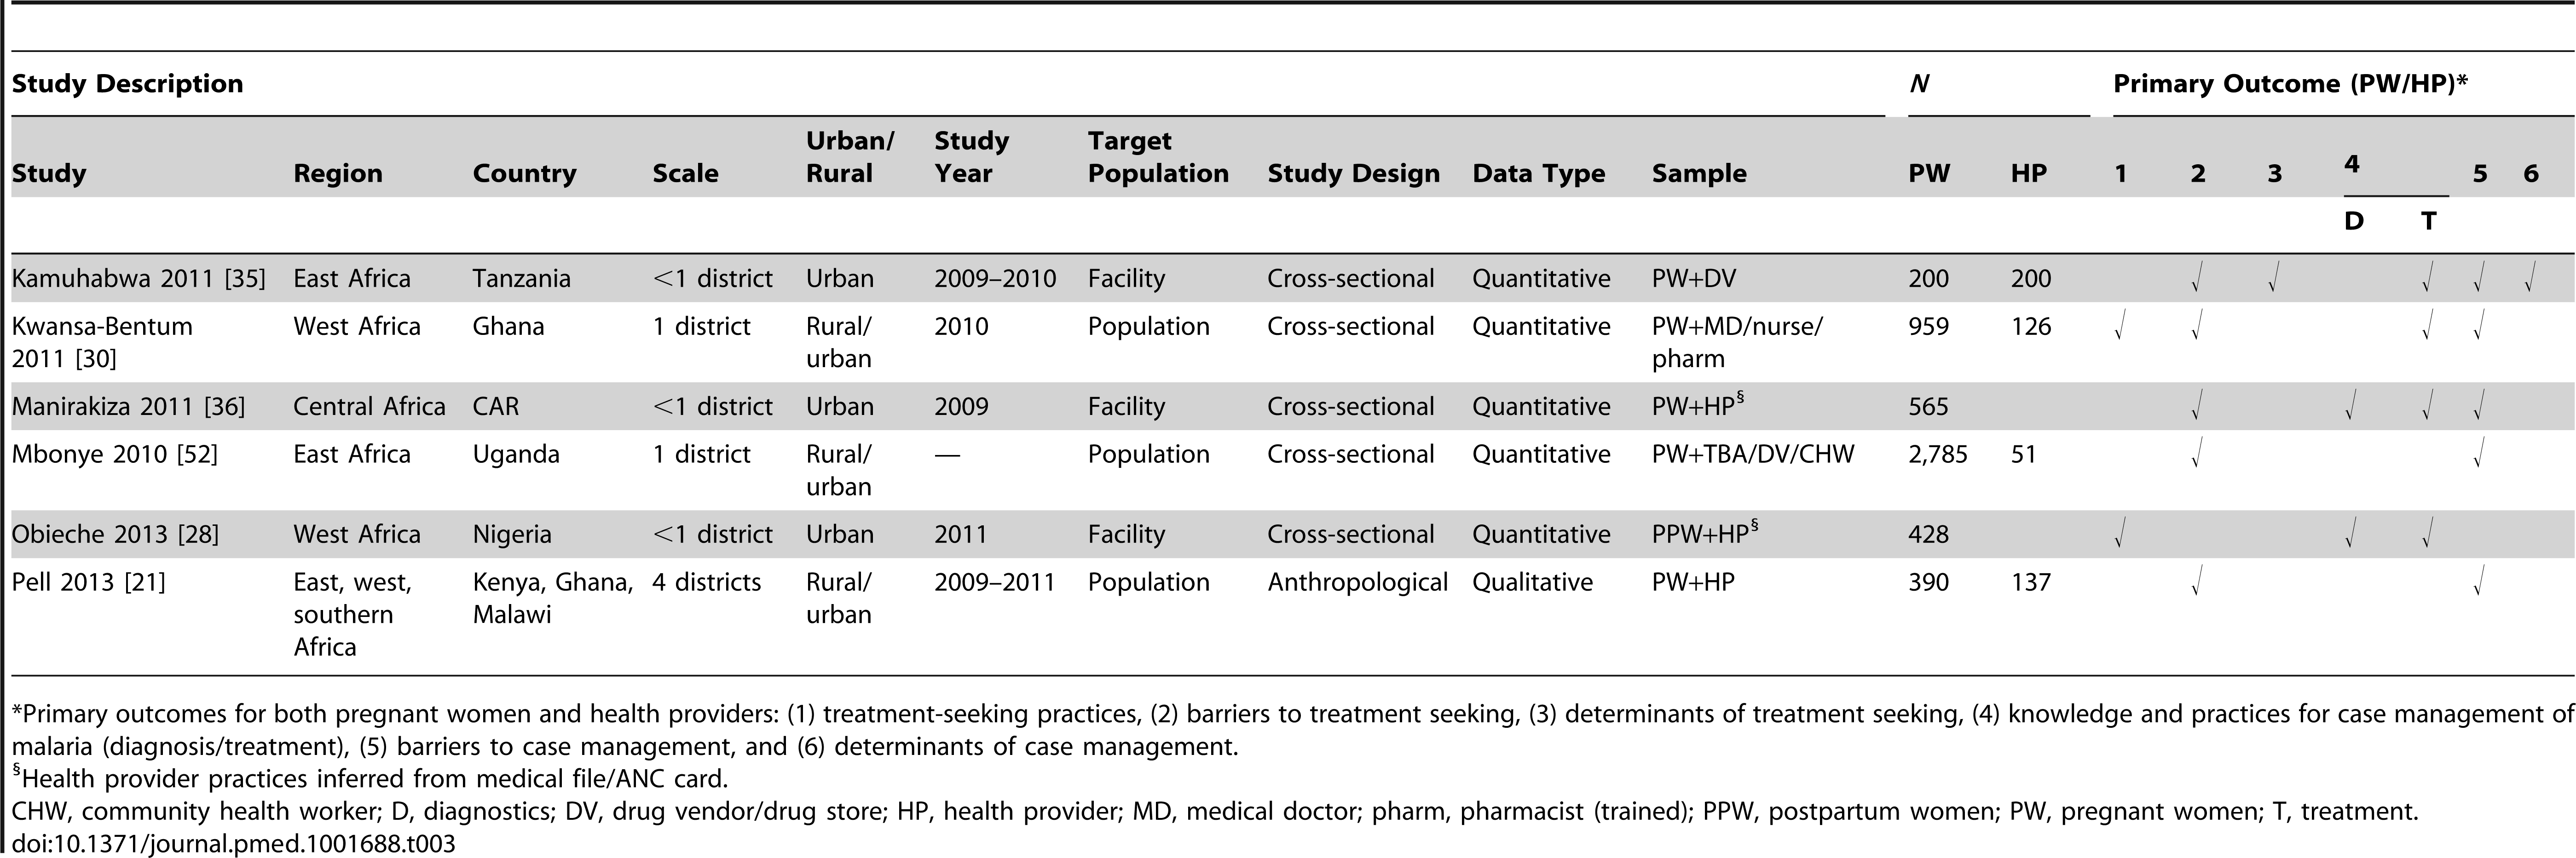 Characteristics of studies reporting outcomes for both pregnant women and health providers (six studies).